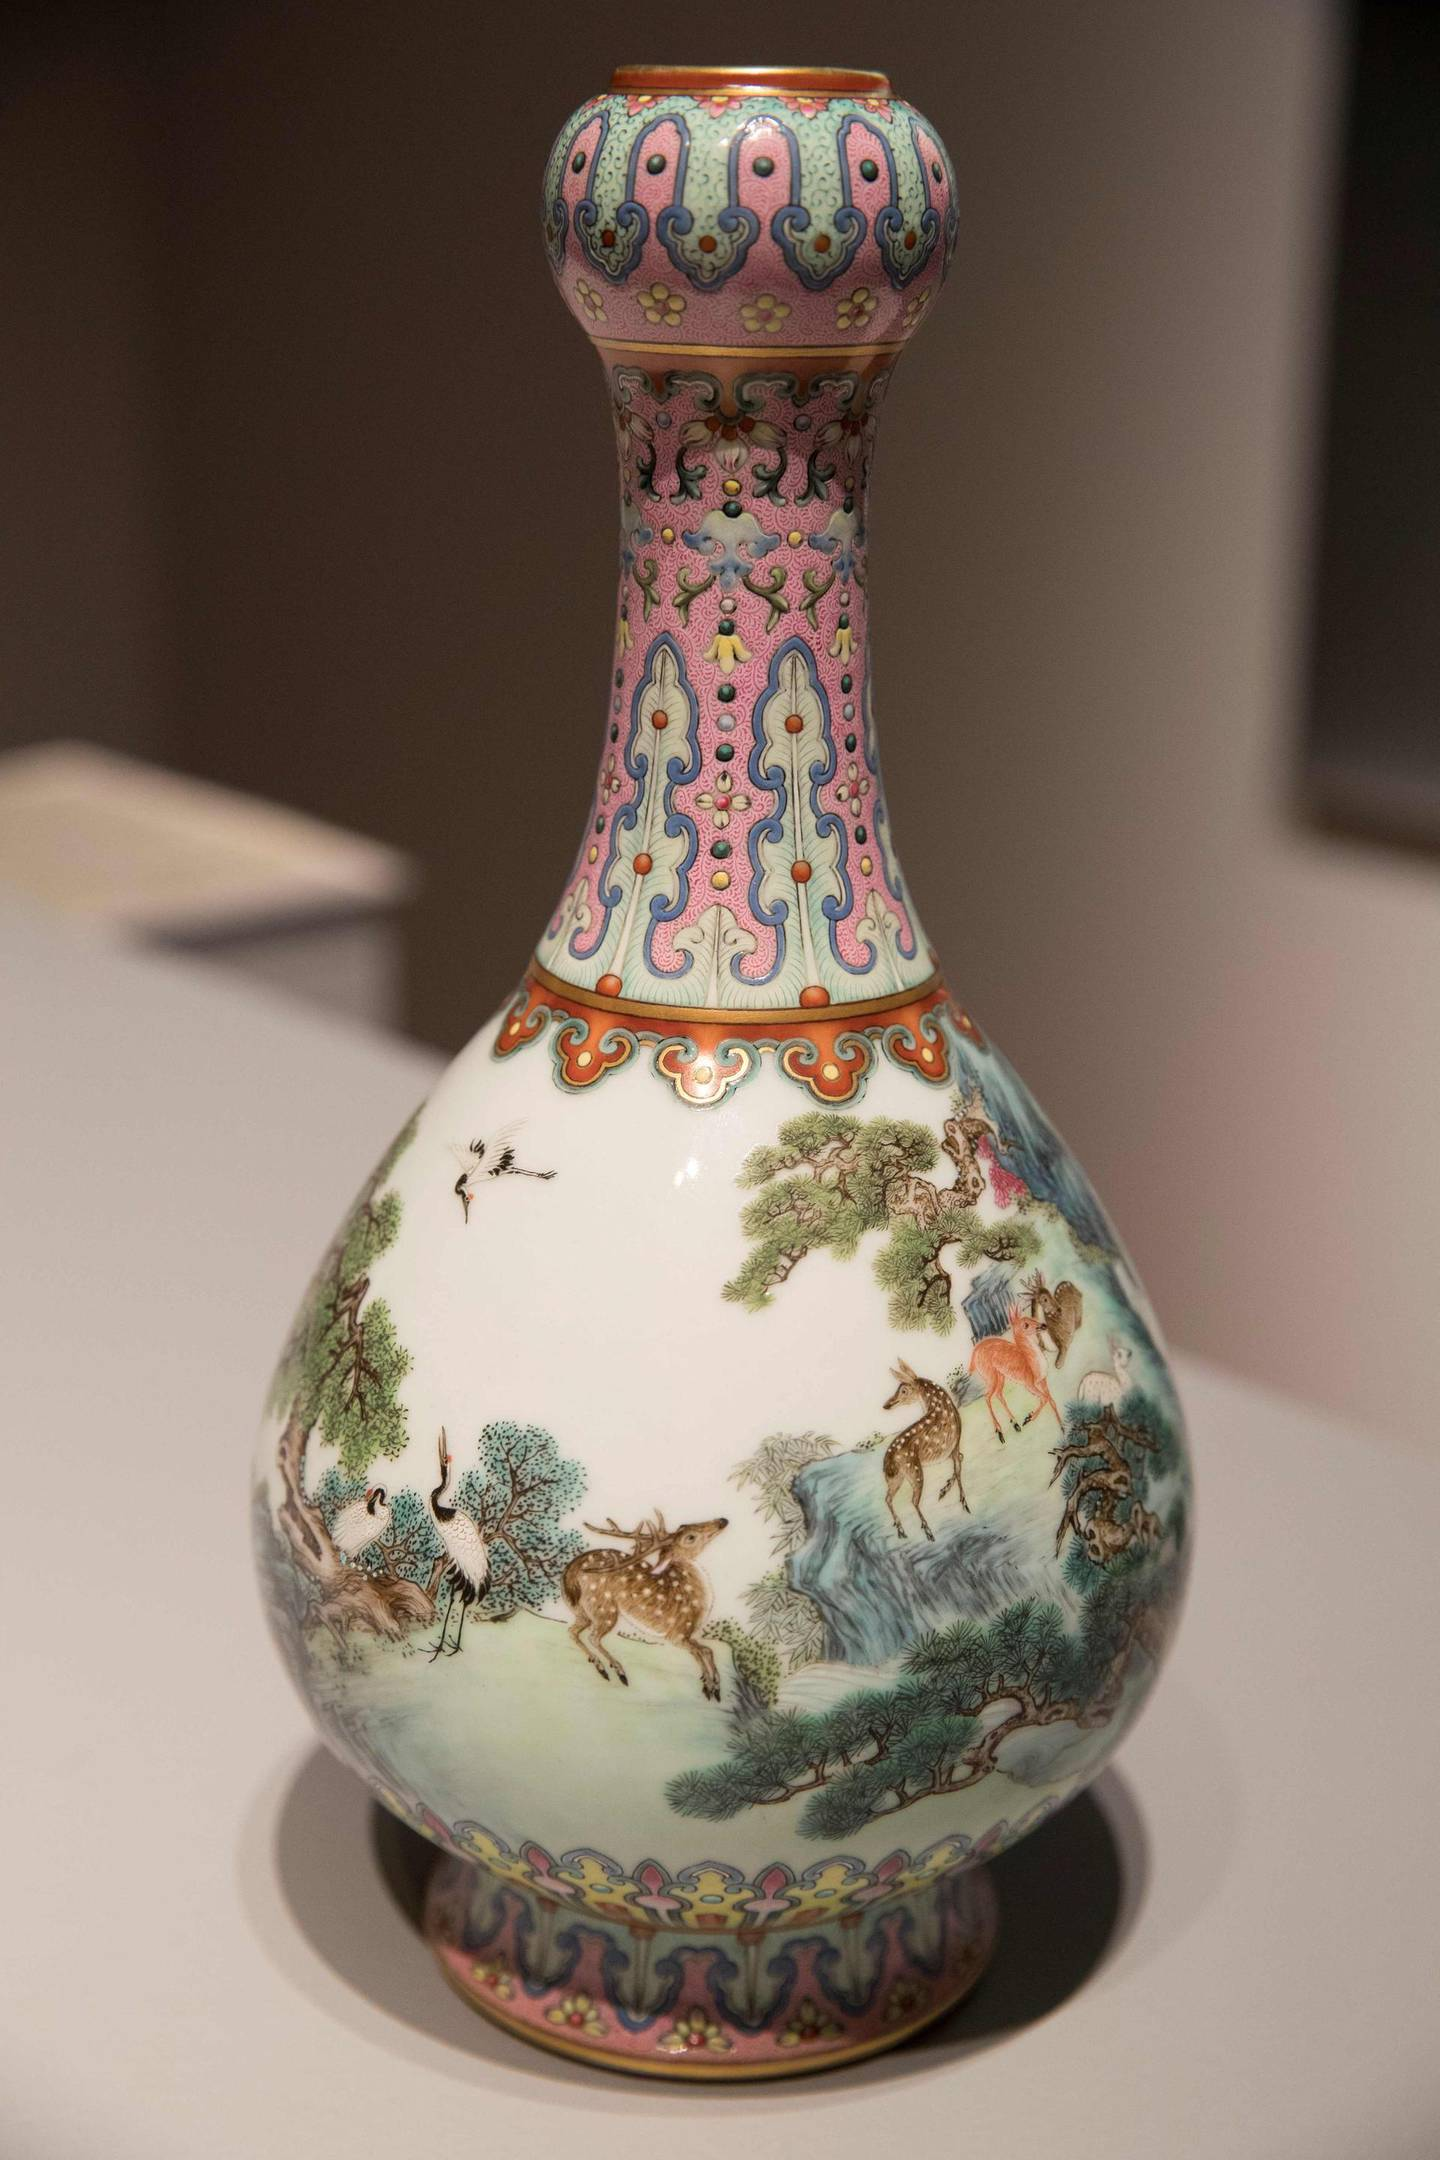 (FILES) In this file photo taken on May 22, 2018 a rare Imperial Qianlong porcelain vase (18th century) is displayed at Sotheby's auction company in Paris.  An 18th-century Chinese vase forgotten for decades in a shoe box in a French attic has been sold for 16.2 million euros ($19 million) at Sotheby's in Paris on June 12, 2018 -- more than 30 times the estimate. / AFP / Thomas SAMSON